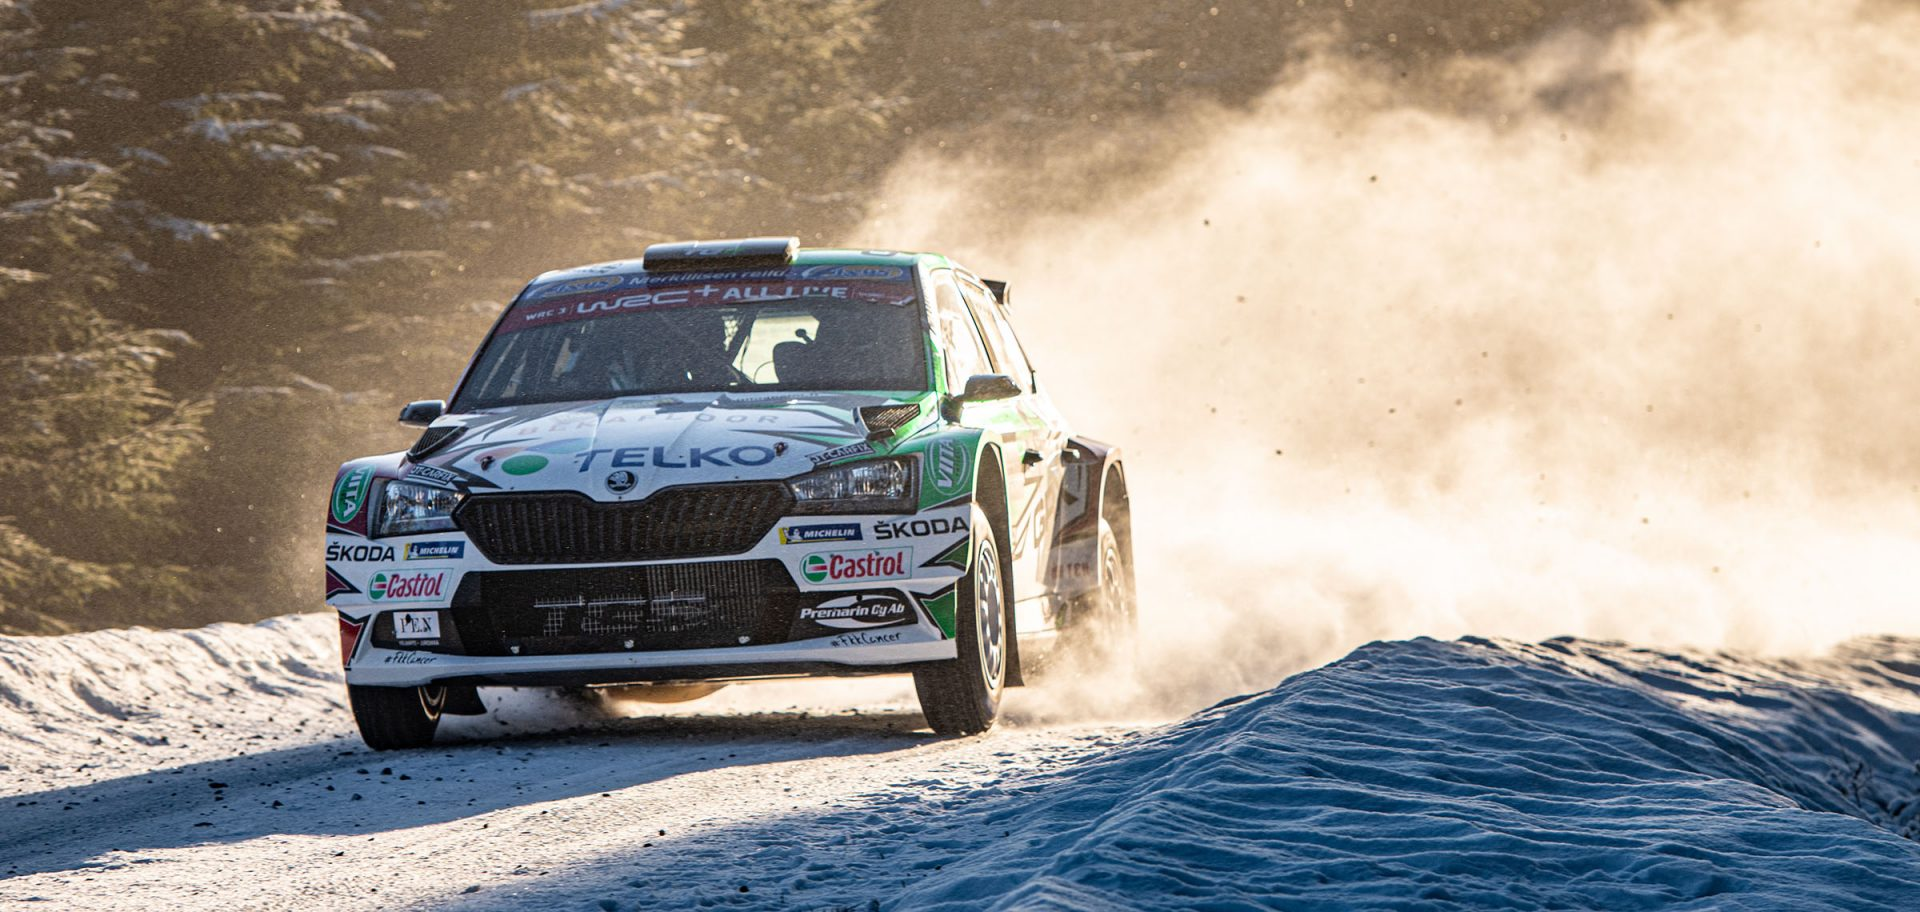 Download wallpapers from the Rally Sweden to your phone